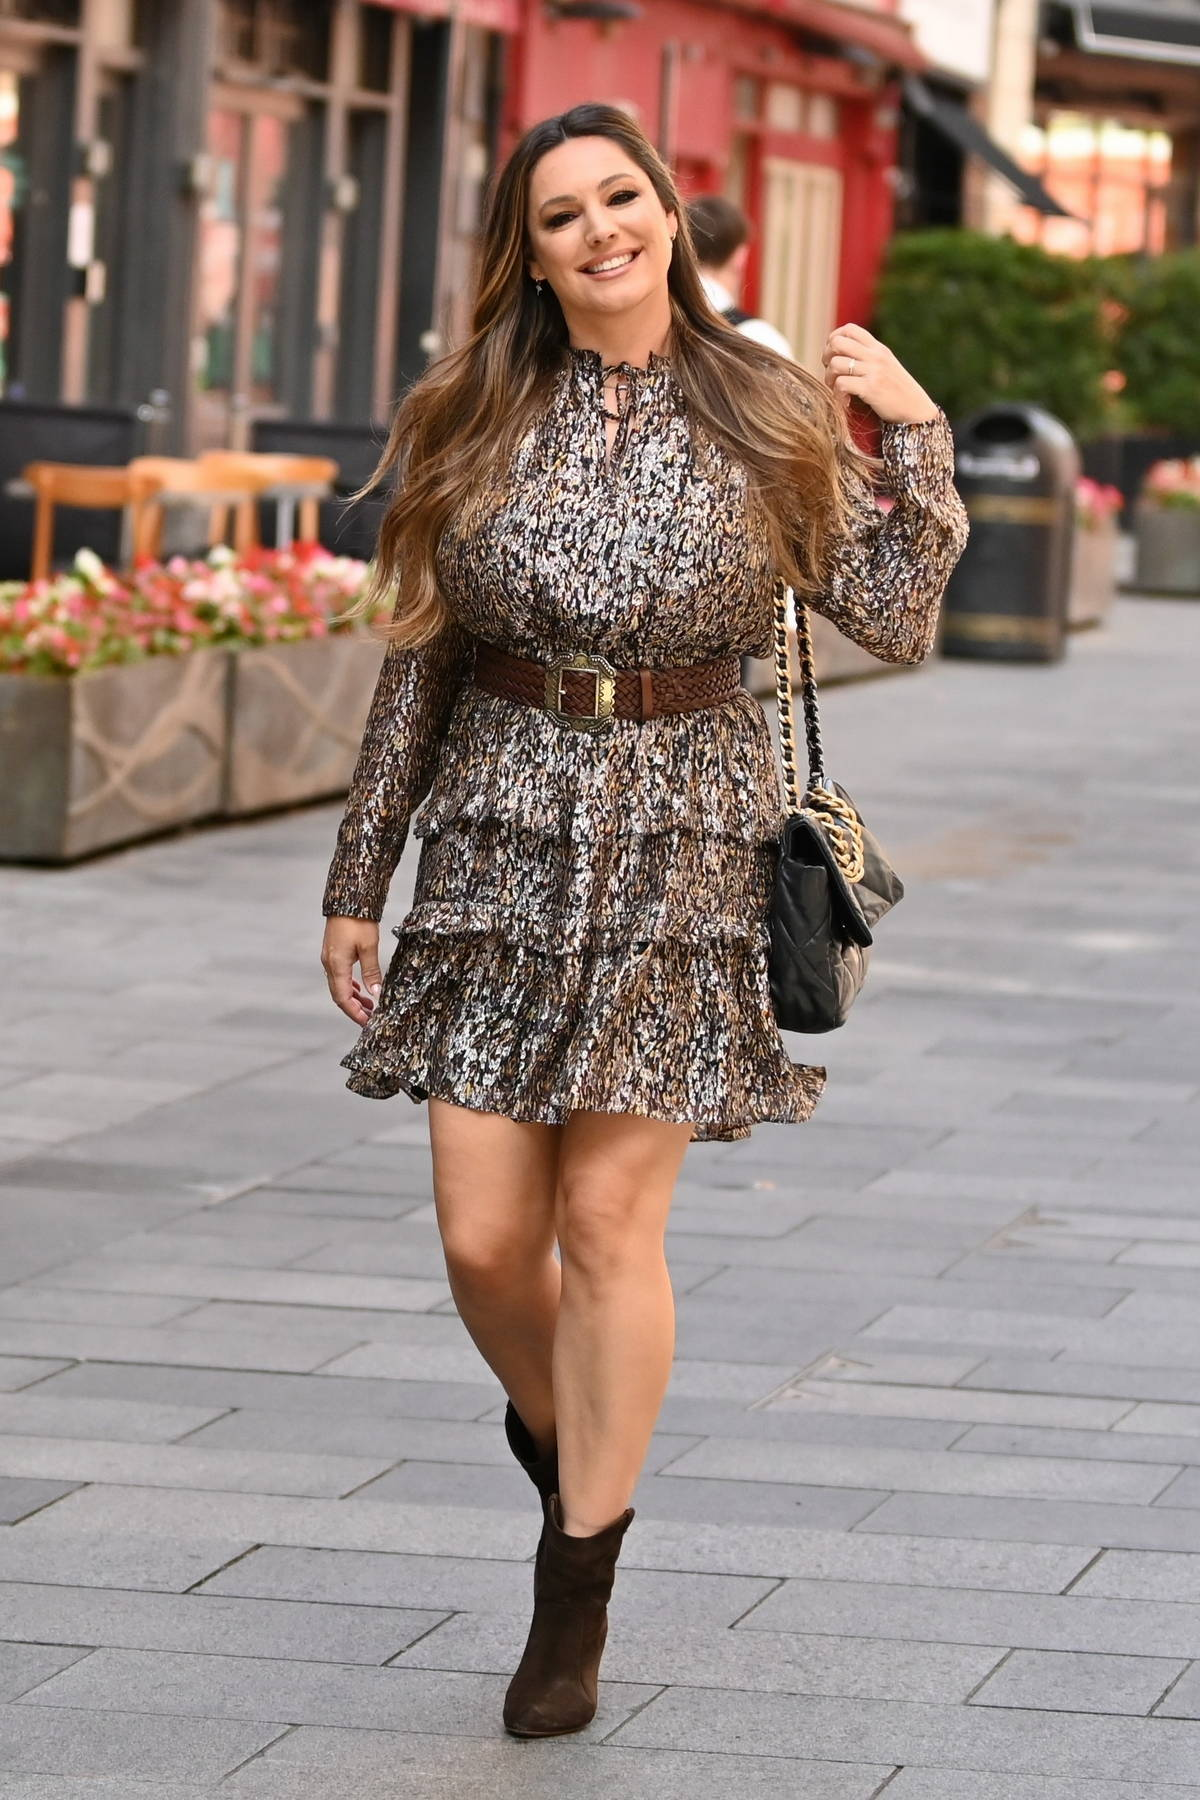 Kelly Brook dazzles in a sparkling metallic short dress as she leaves Heart radio in London, UK